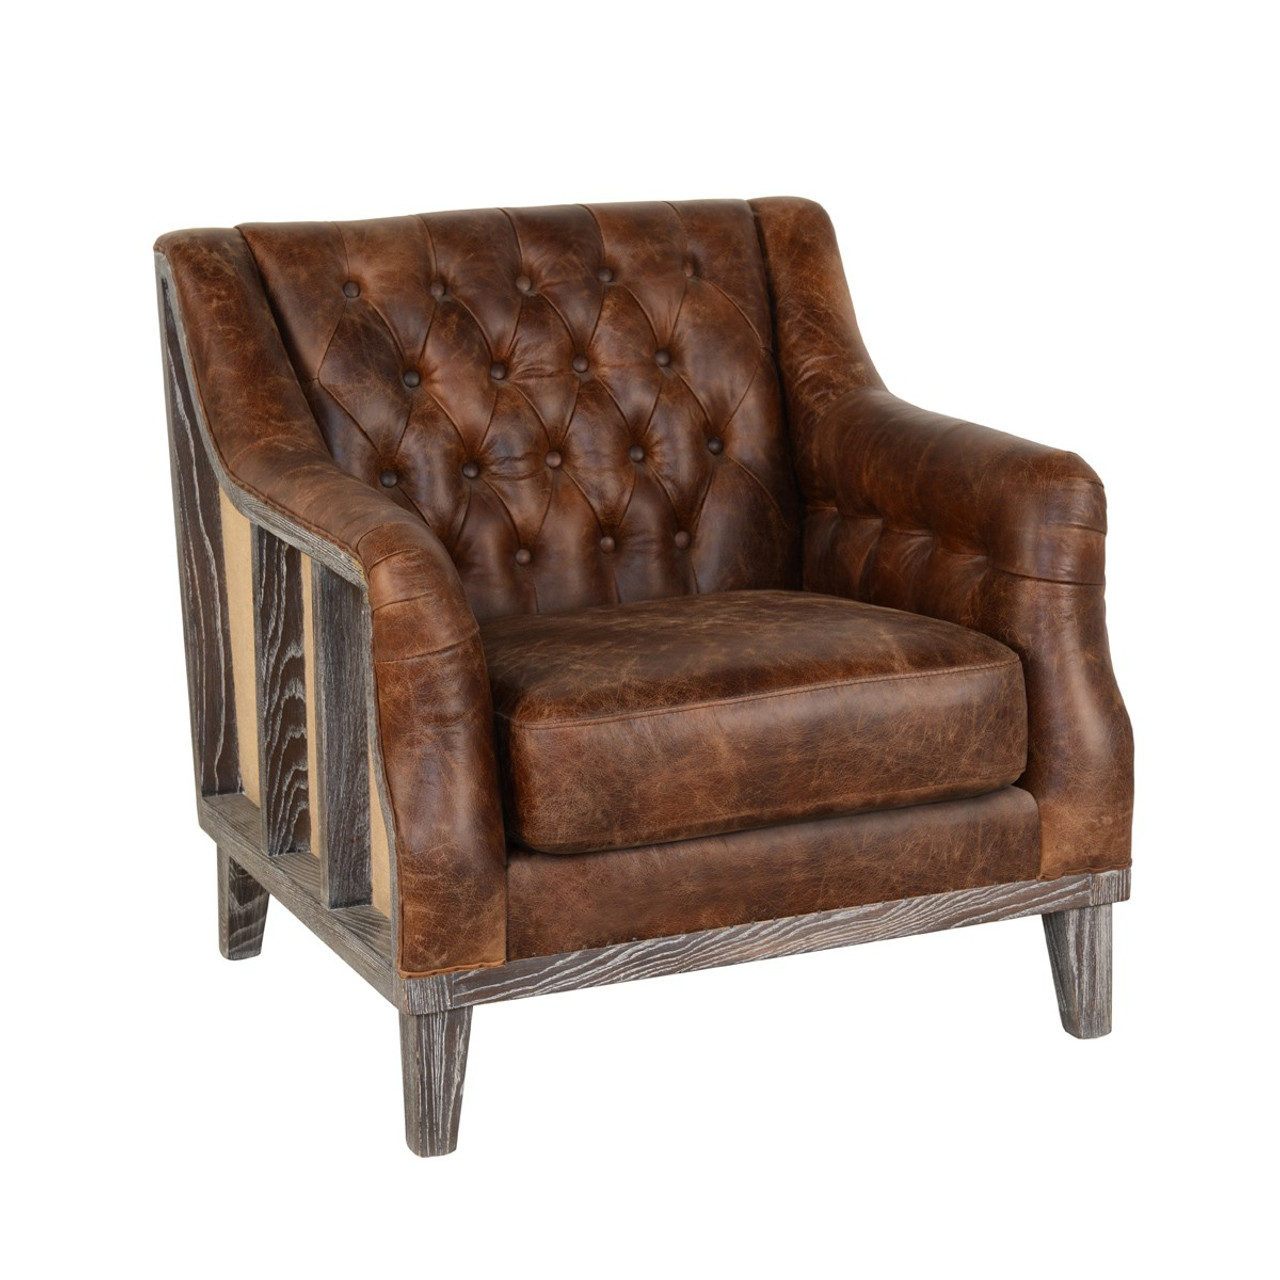 Deconstructed Vintage Leather Club Chair Zin Home